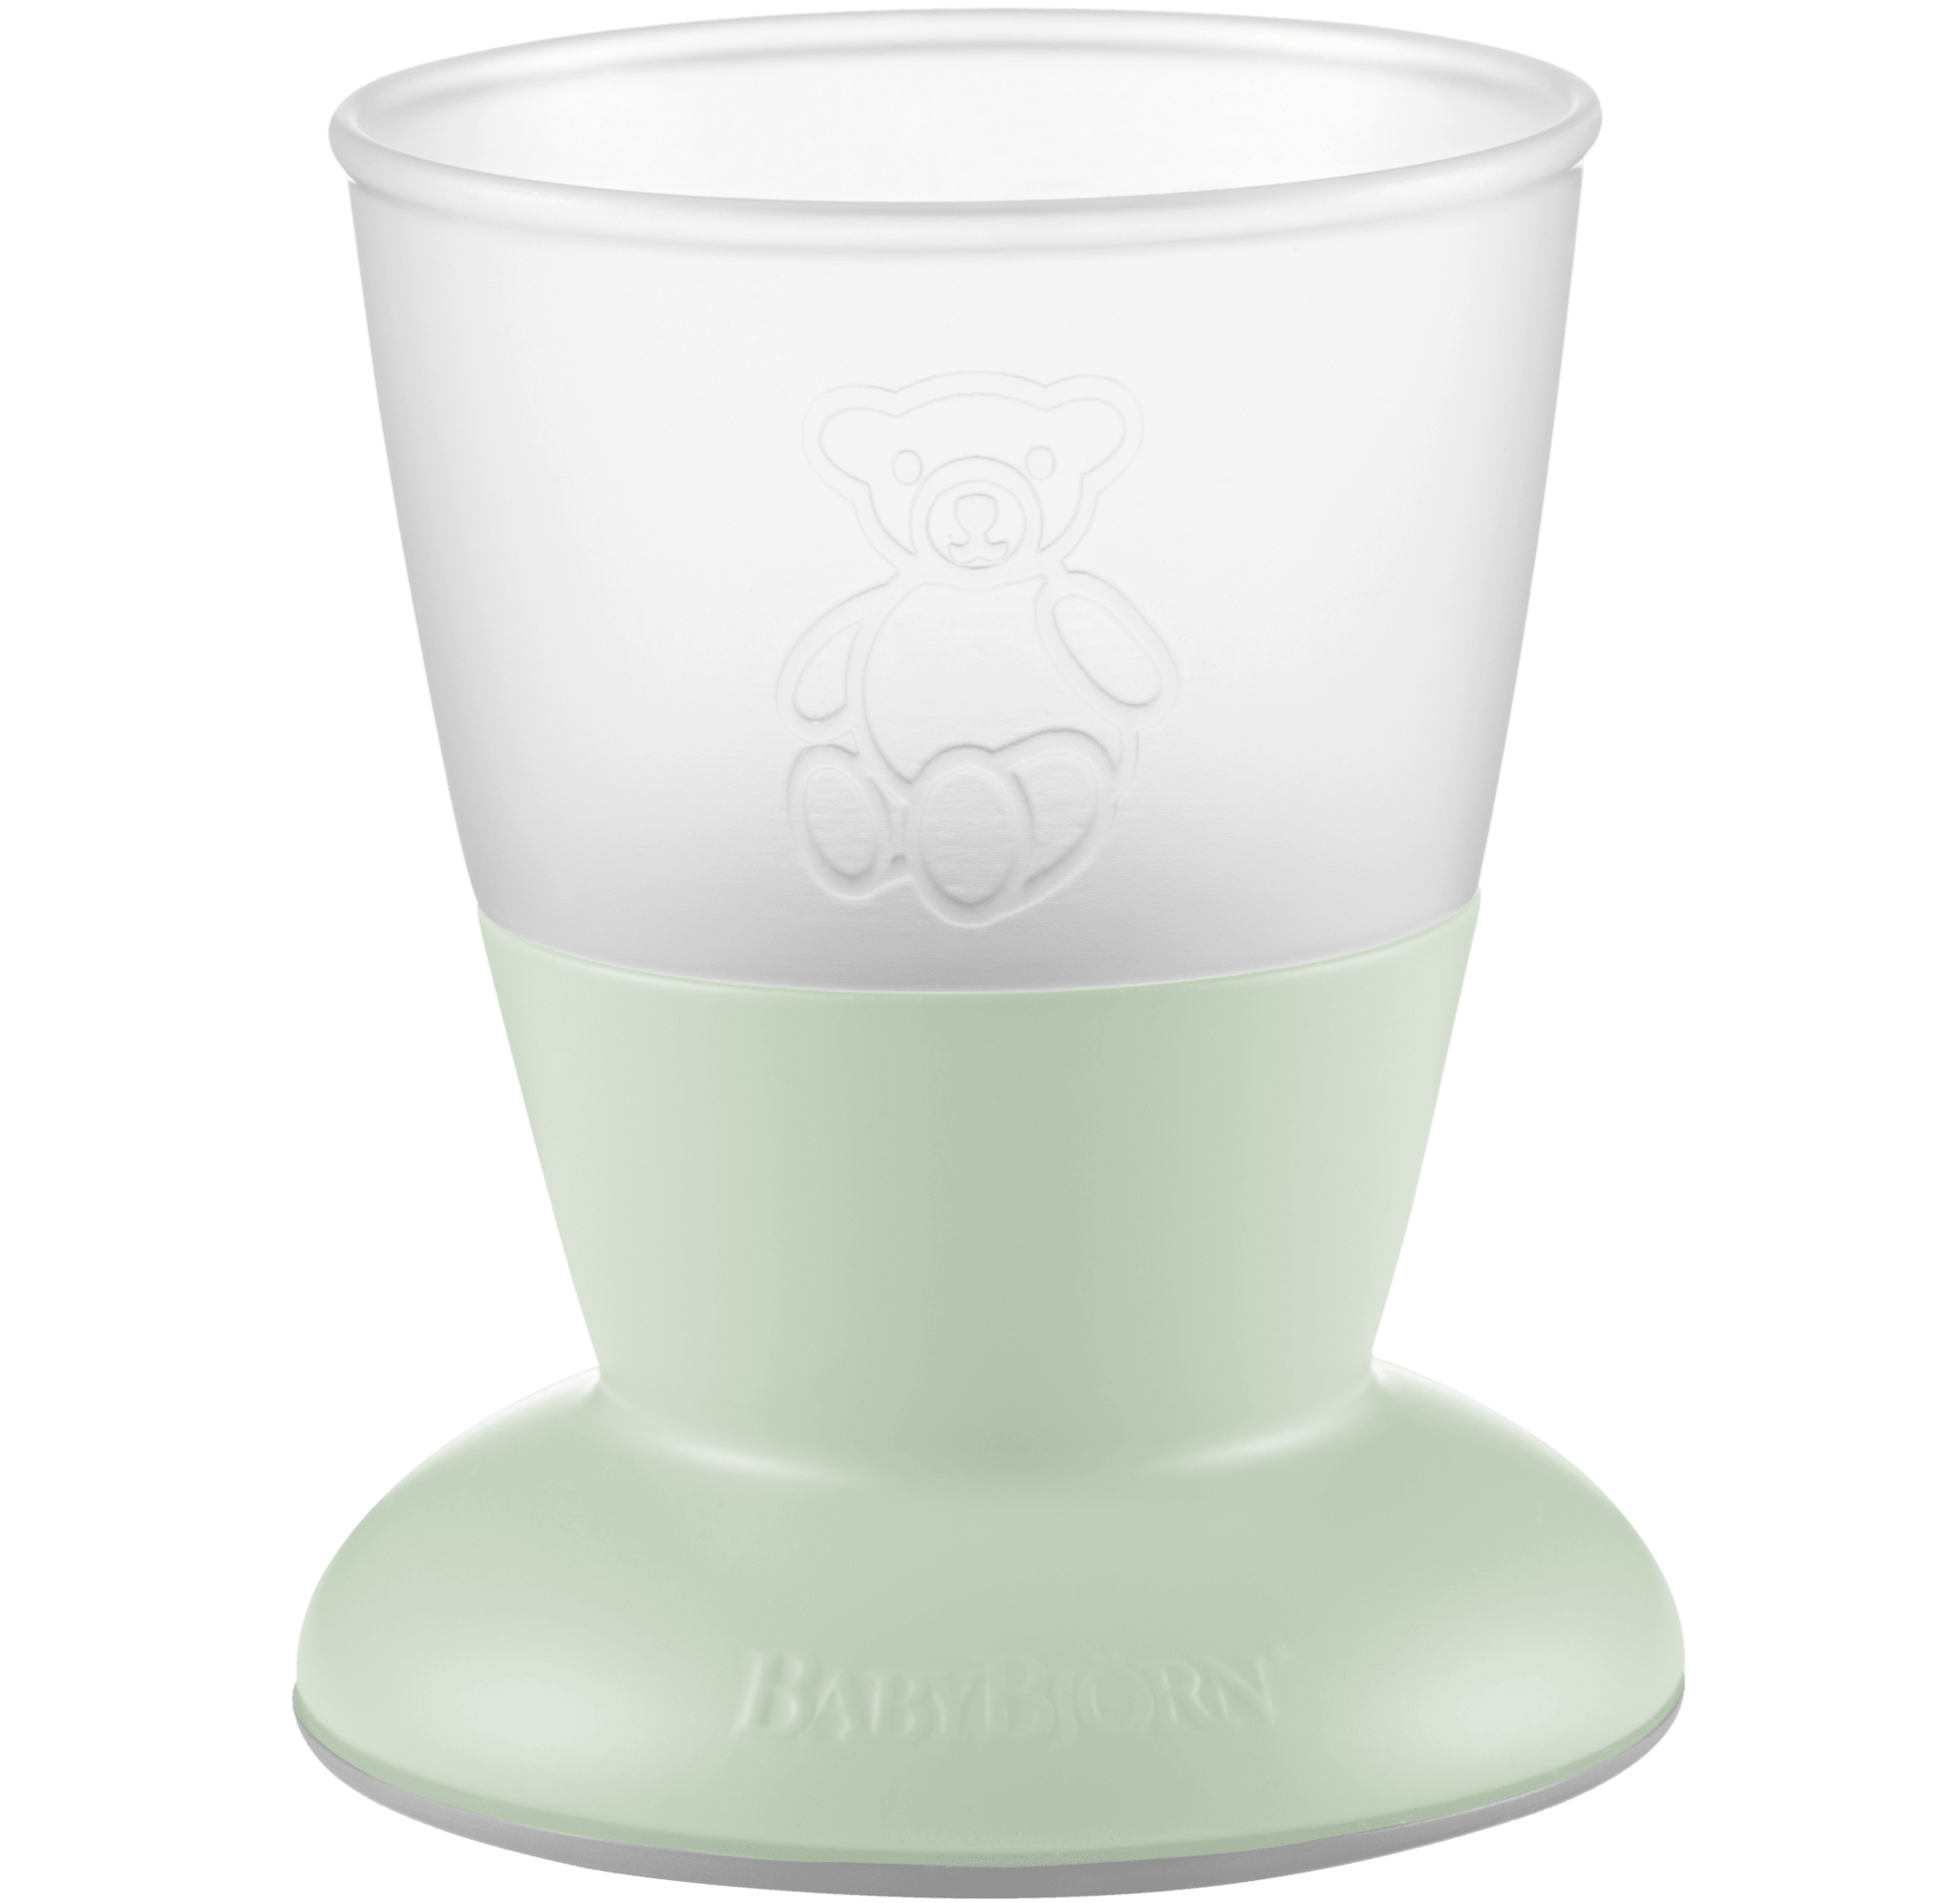 Baby Cup, 2-pack, Powder green, BPA-free plastic made in Sweden - BABYBJÖRN